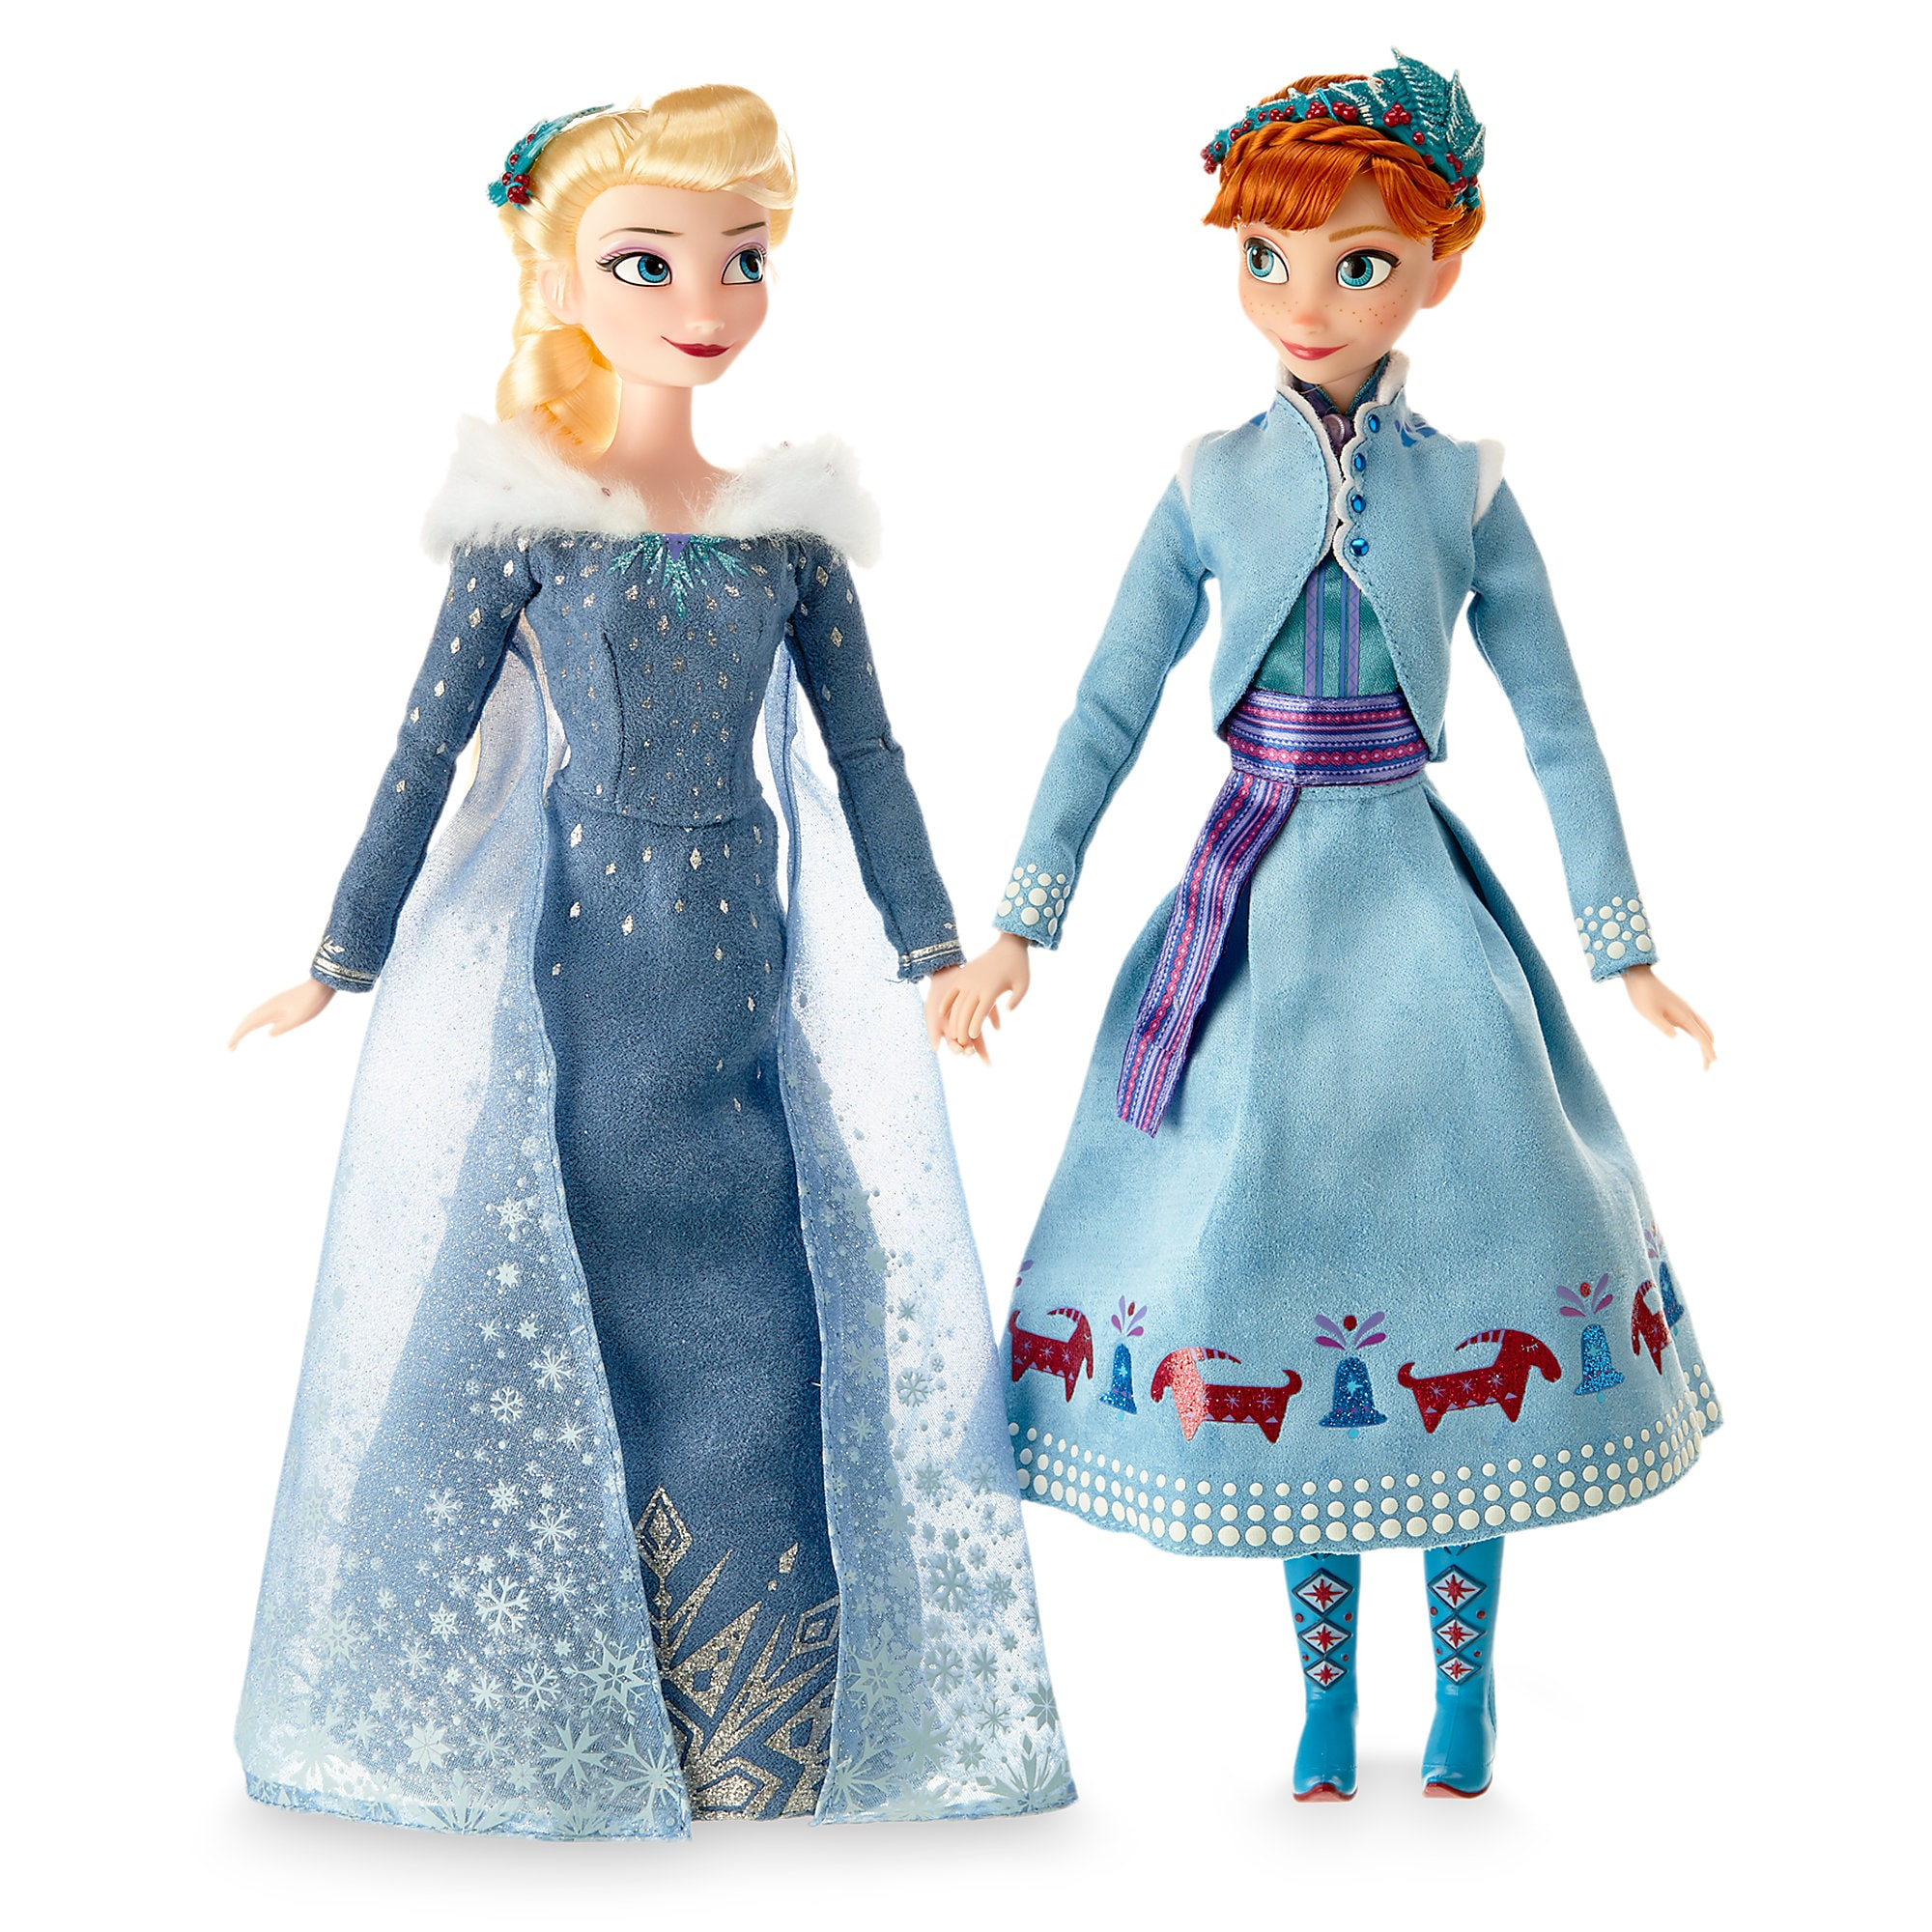 Disney: Frozen & Princess dolls